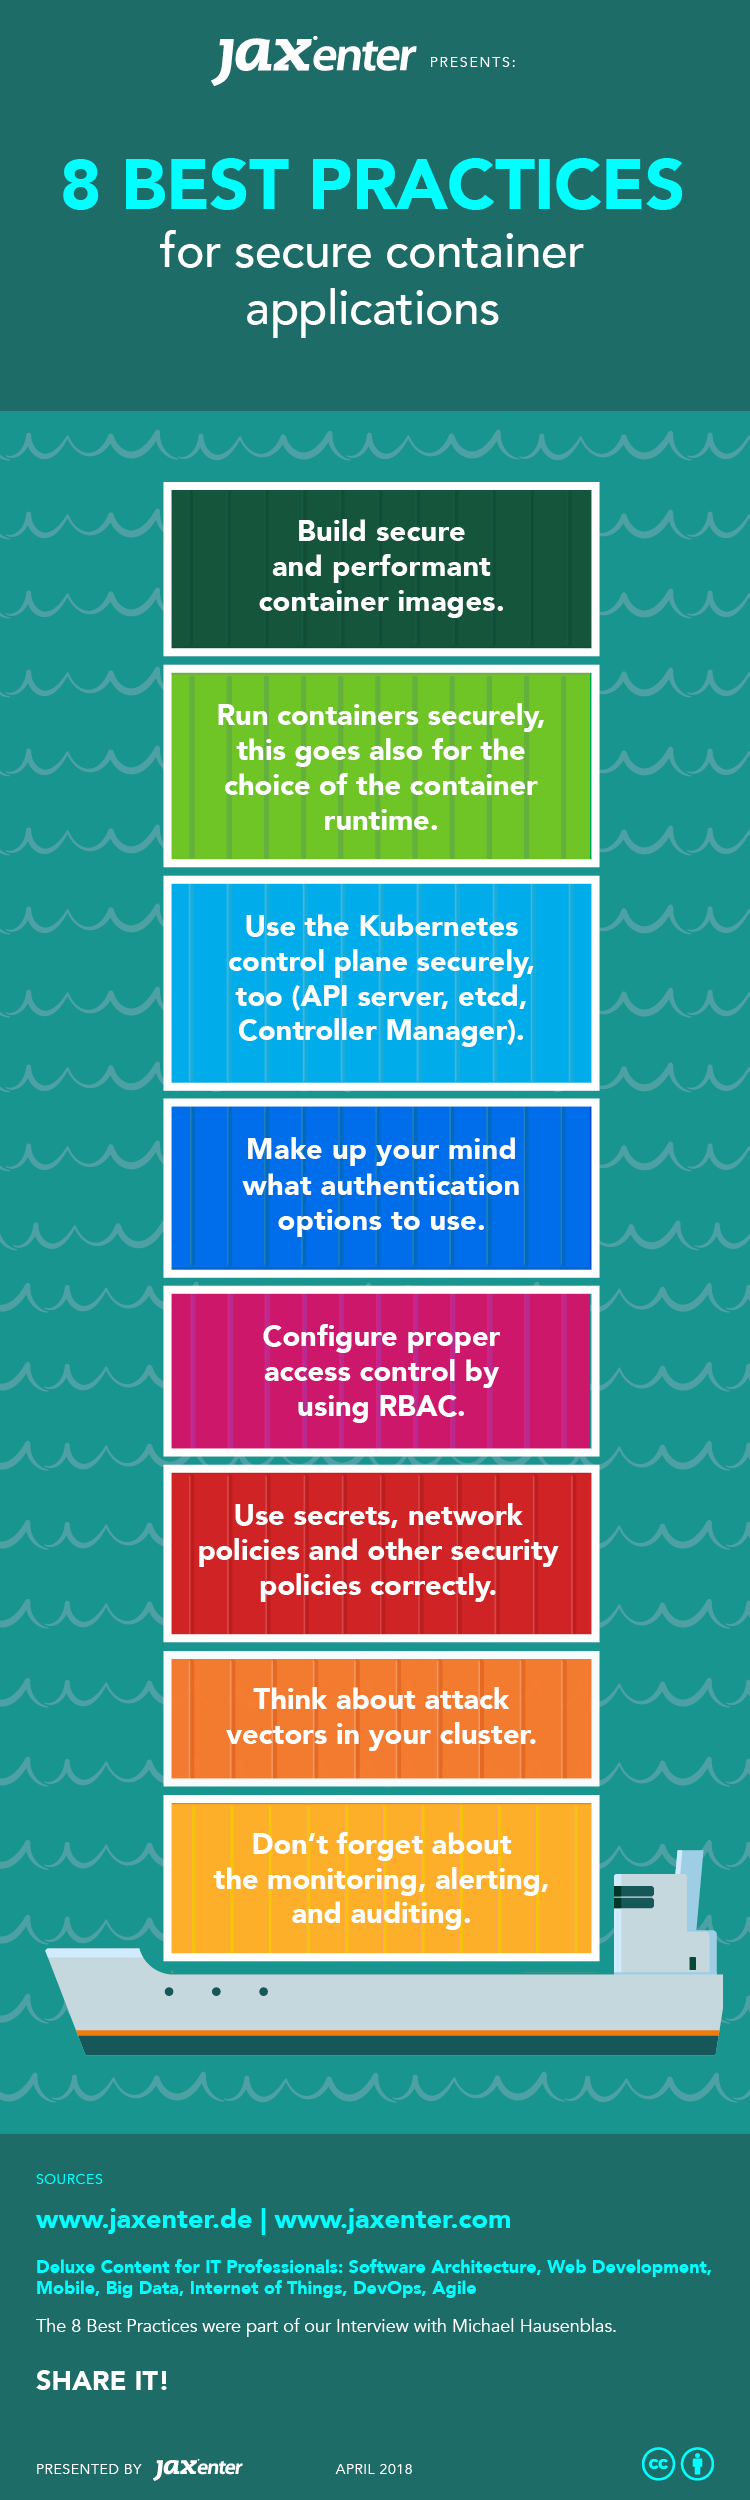 8 best practices for secure container applications